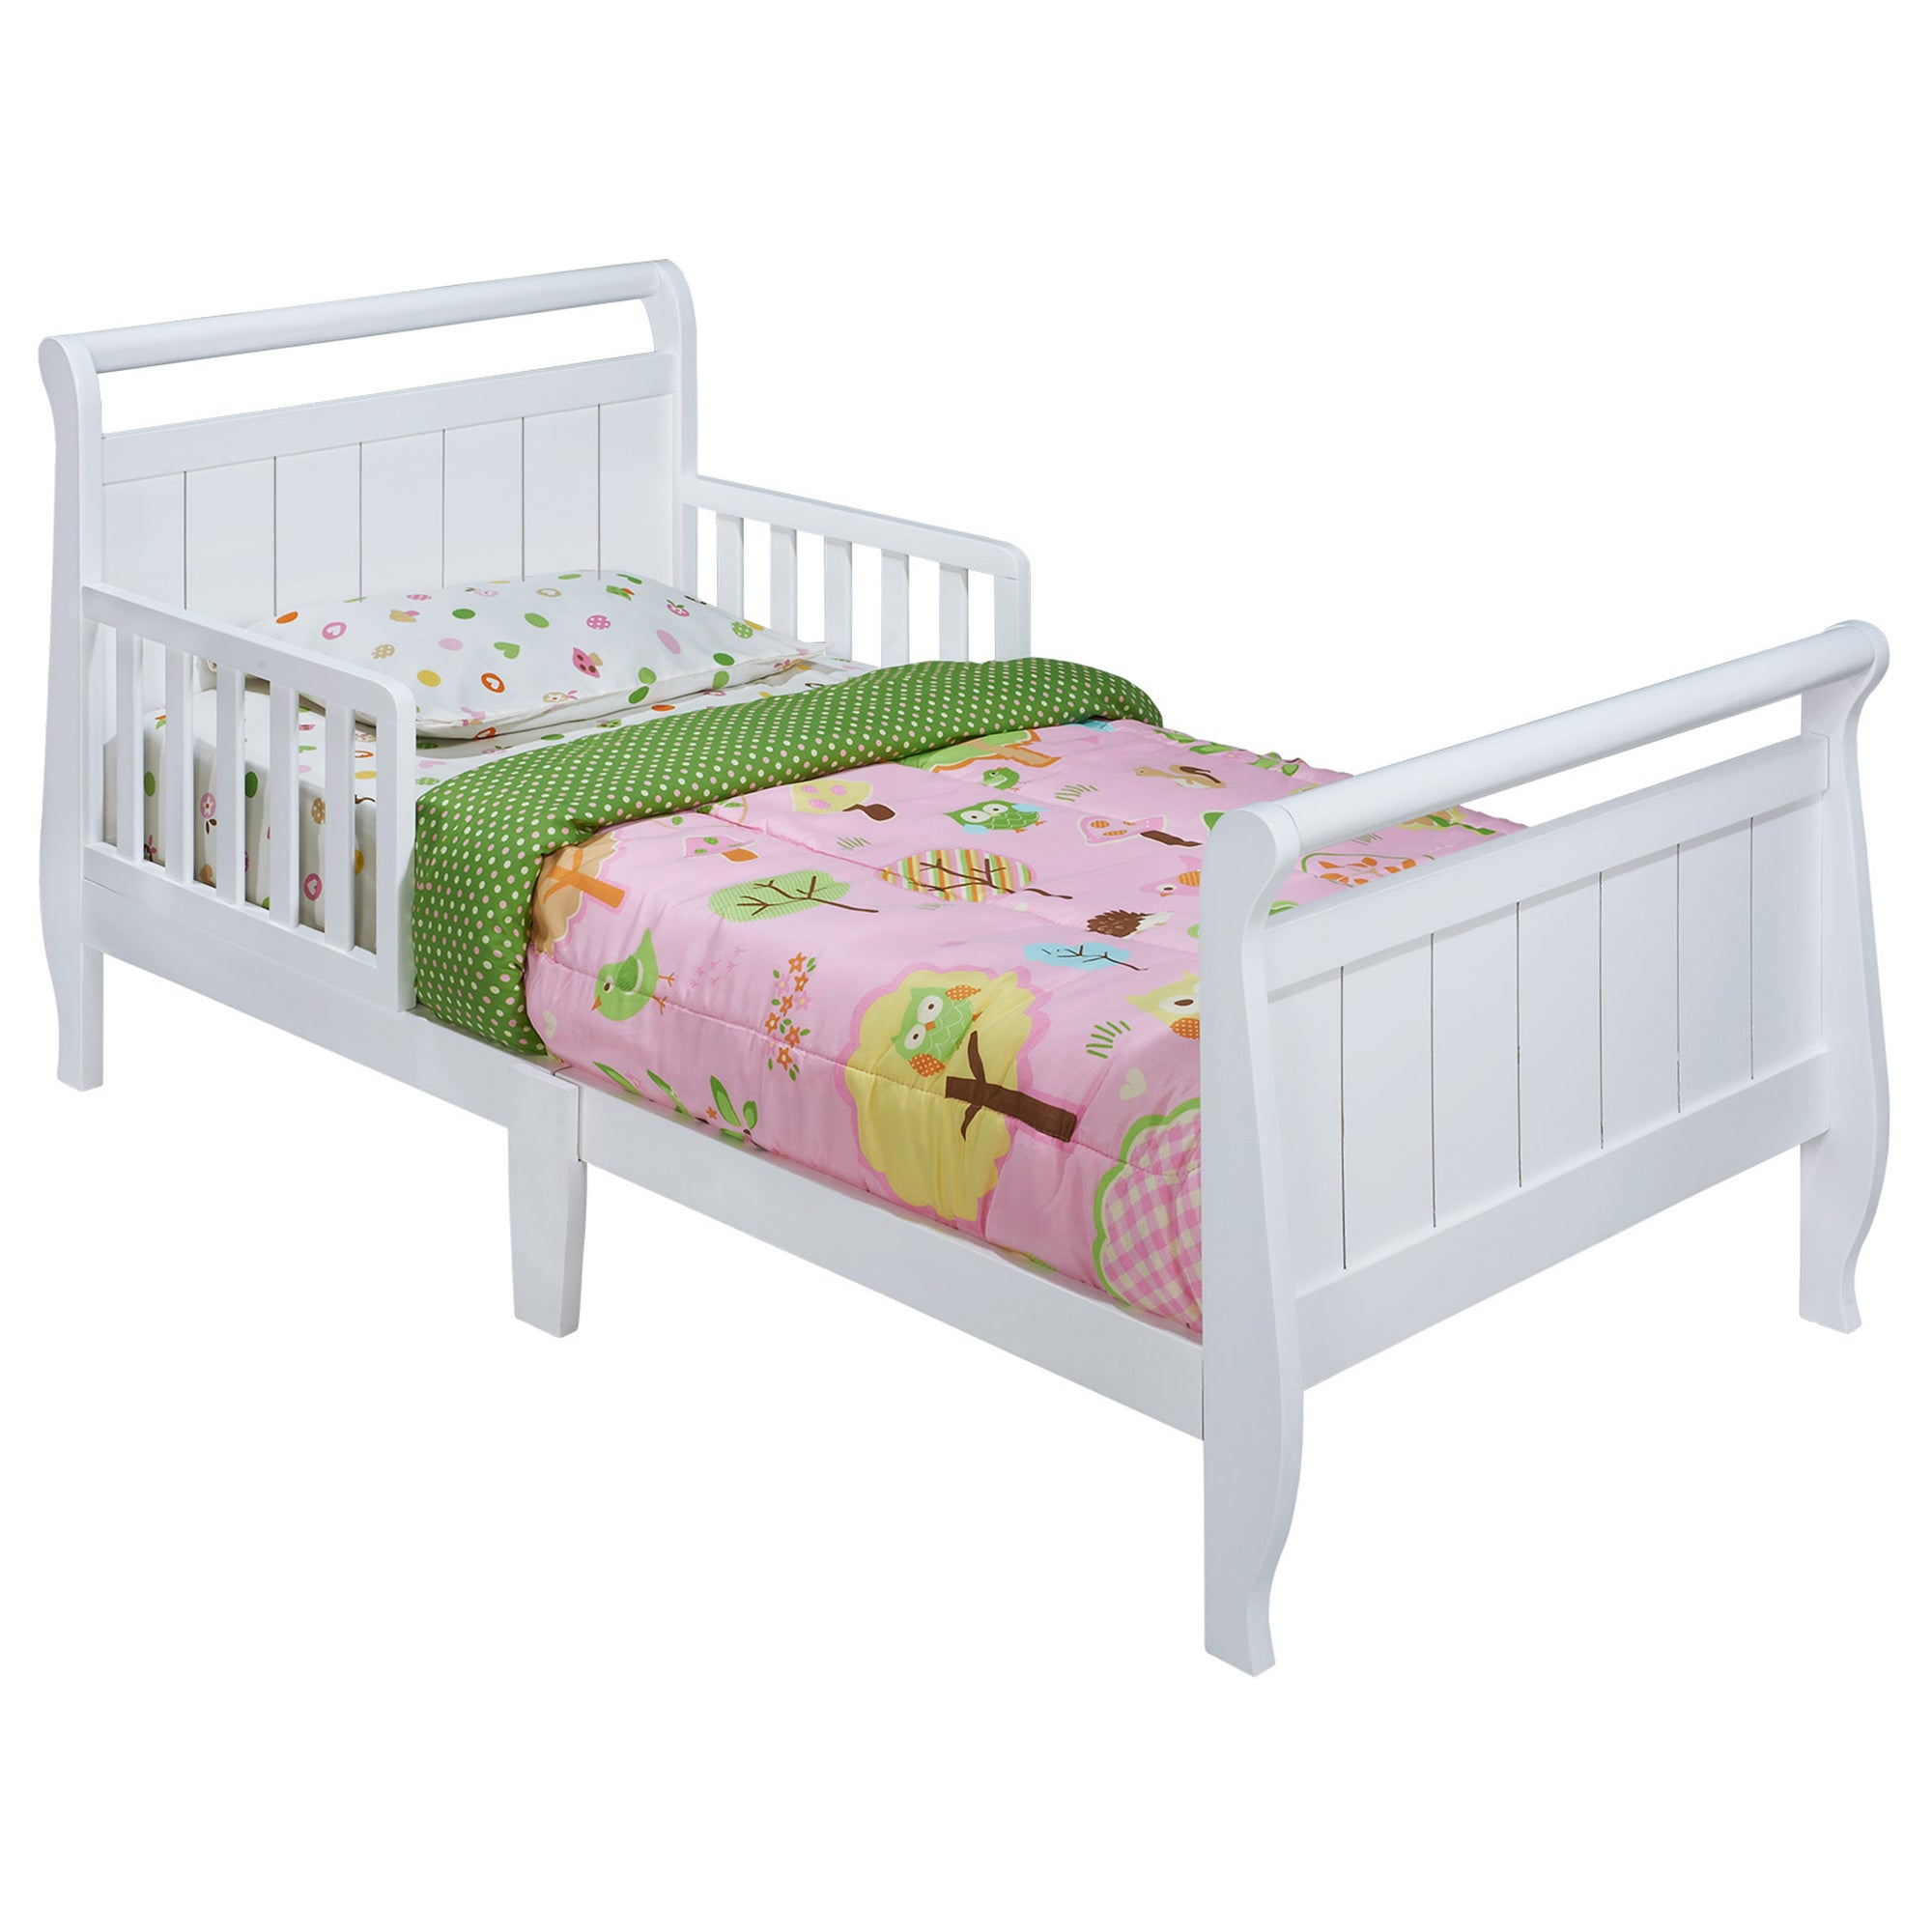 Picture of: Toddler Bed Delta Children